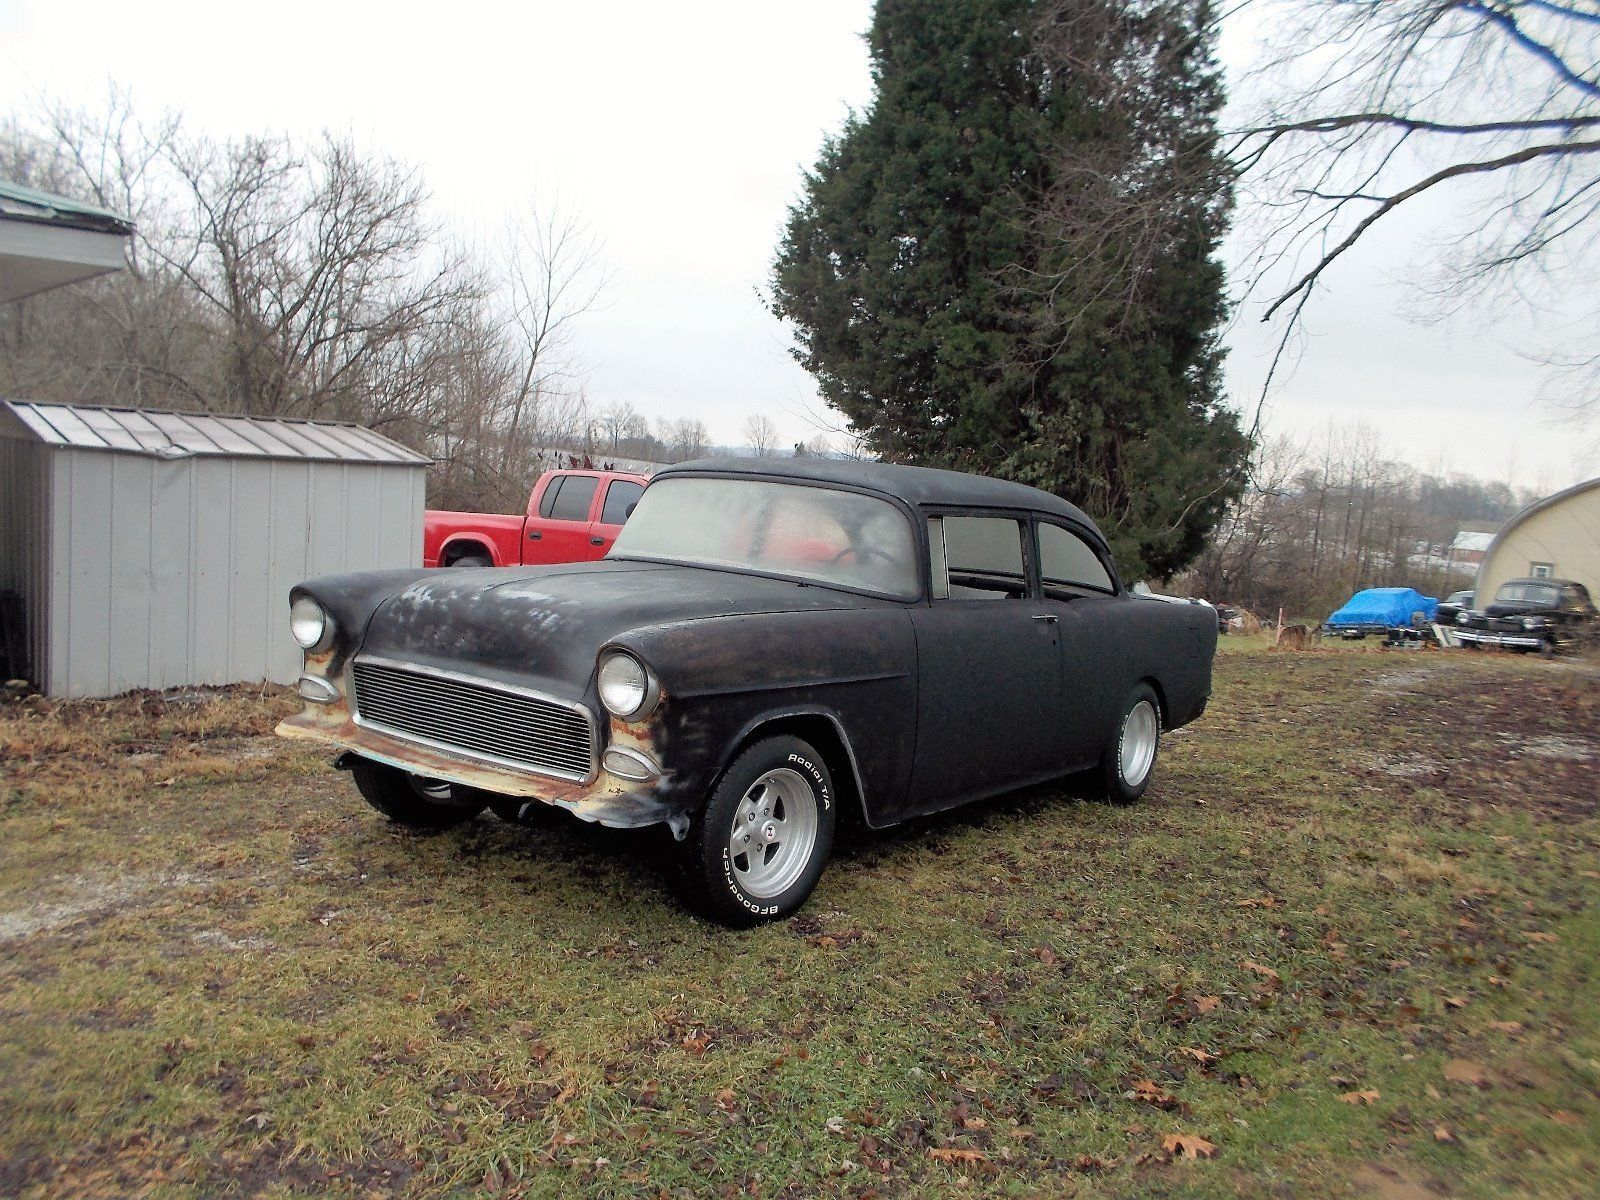 1955 Chevy 2dr Oldschool custom project car Project cars